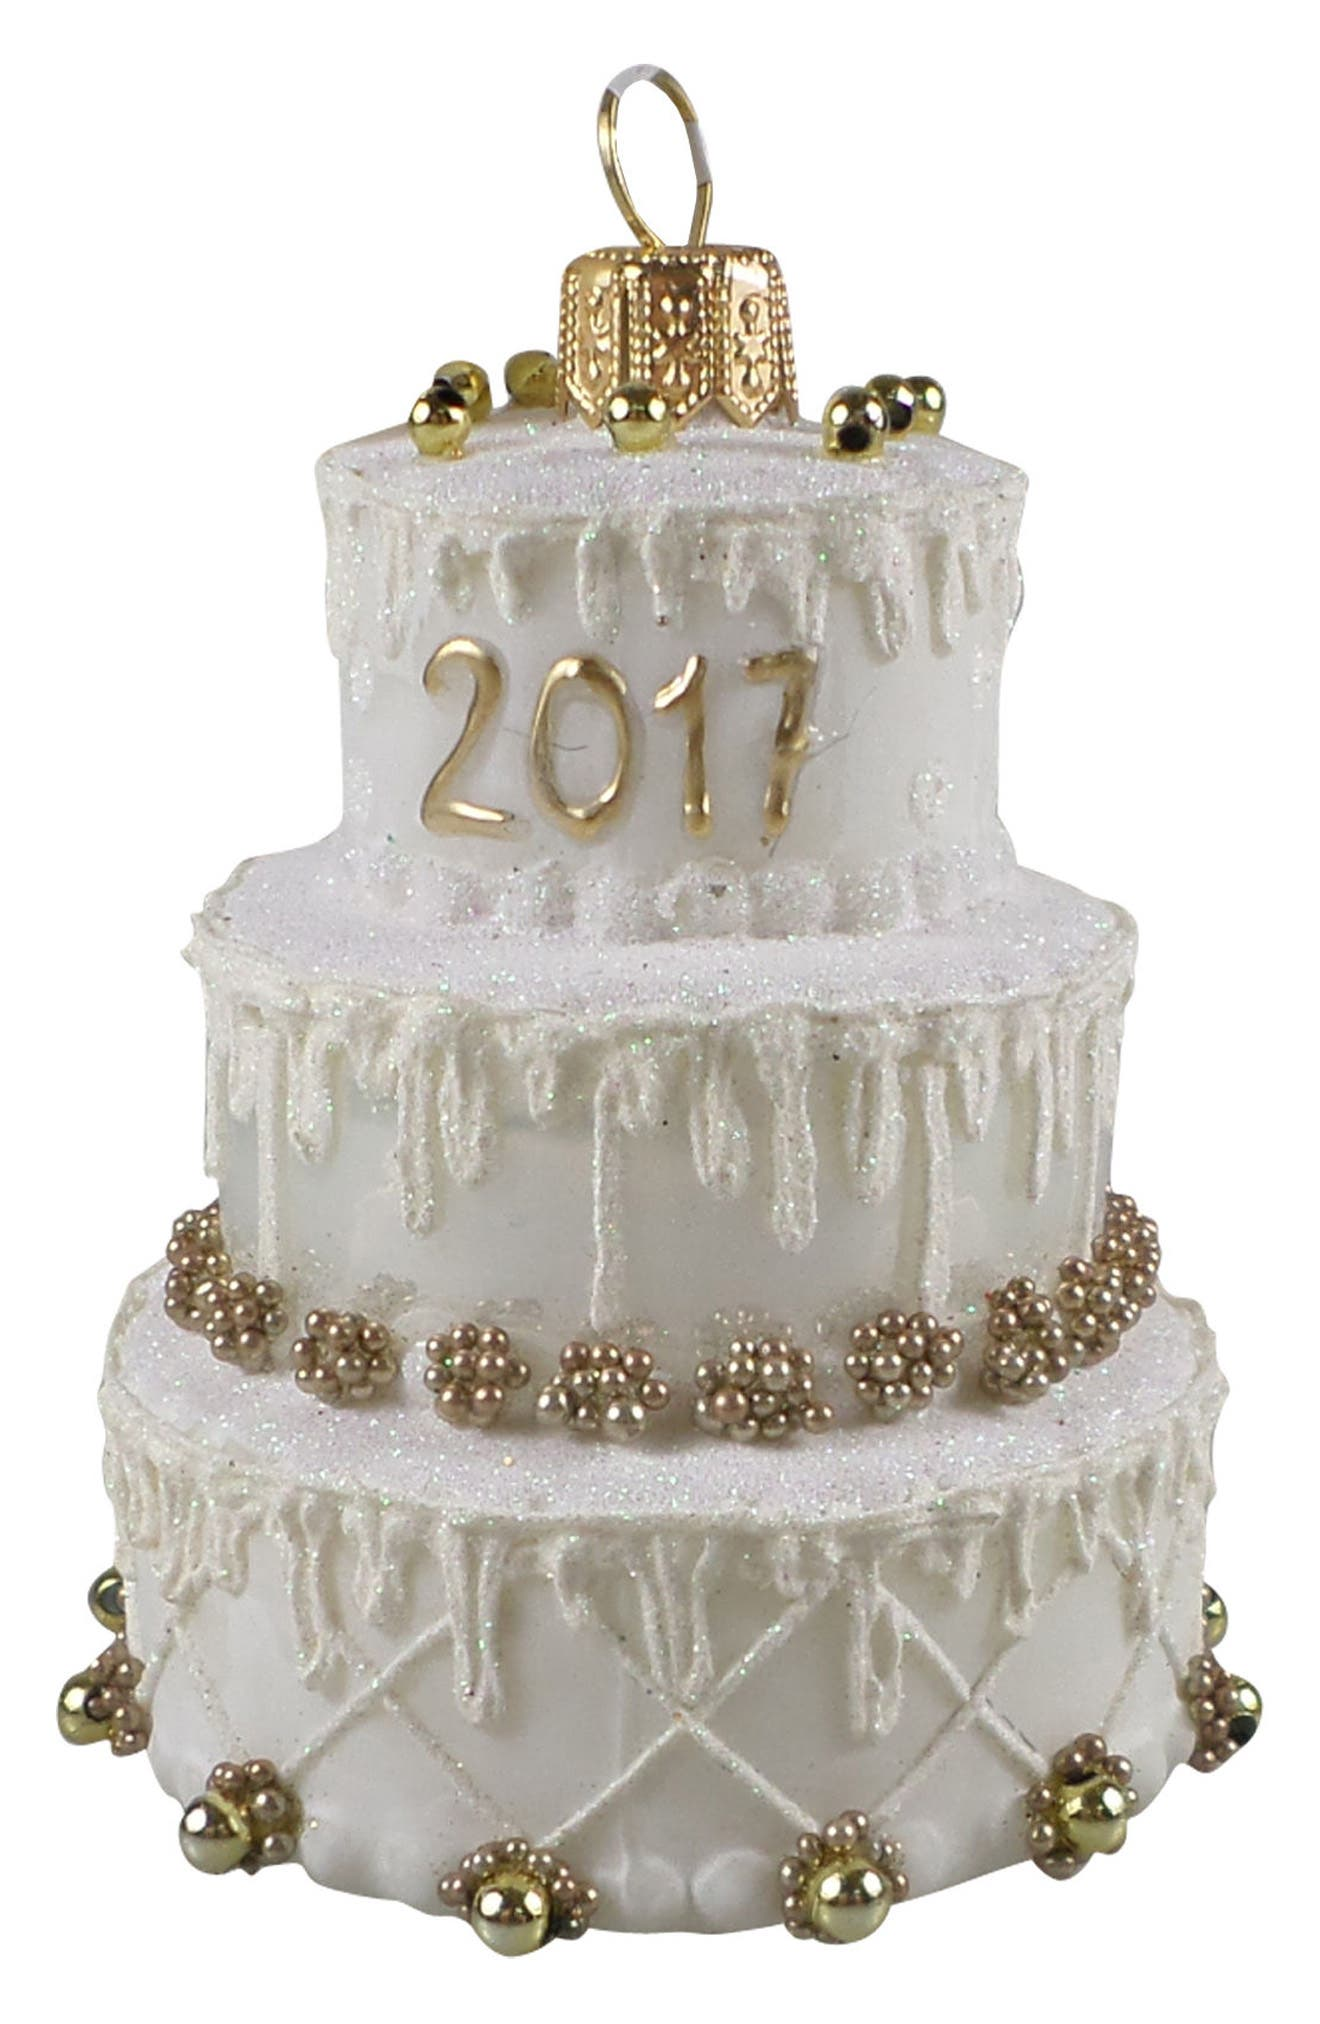 Handblown Glass Wedding Cake Ornament,                         Main,                         color, White/ Gold